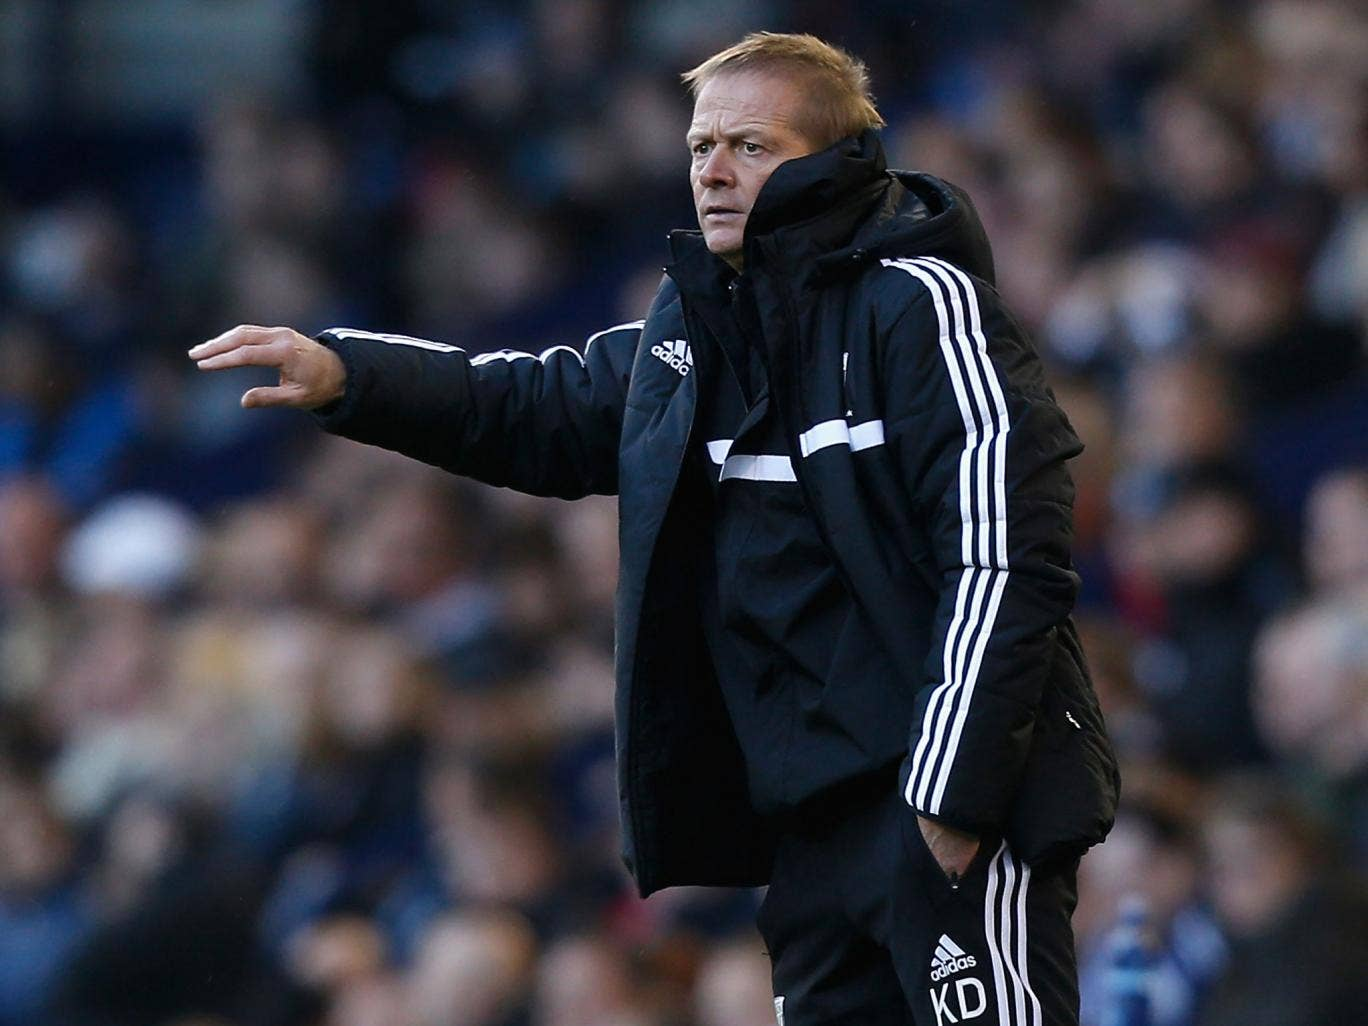 West Brom assistant manager Keith Downing will take charge of their Premier League match against Hull this weekend